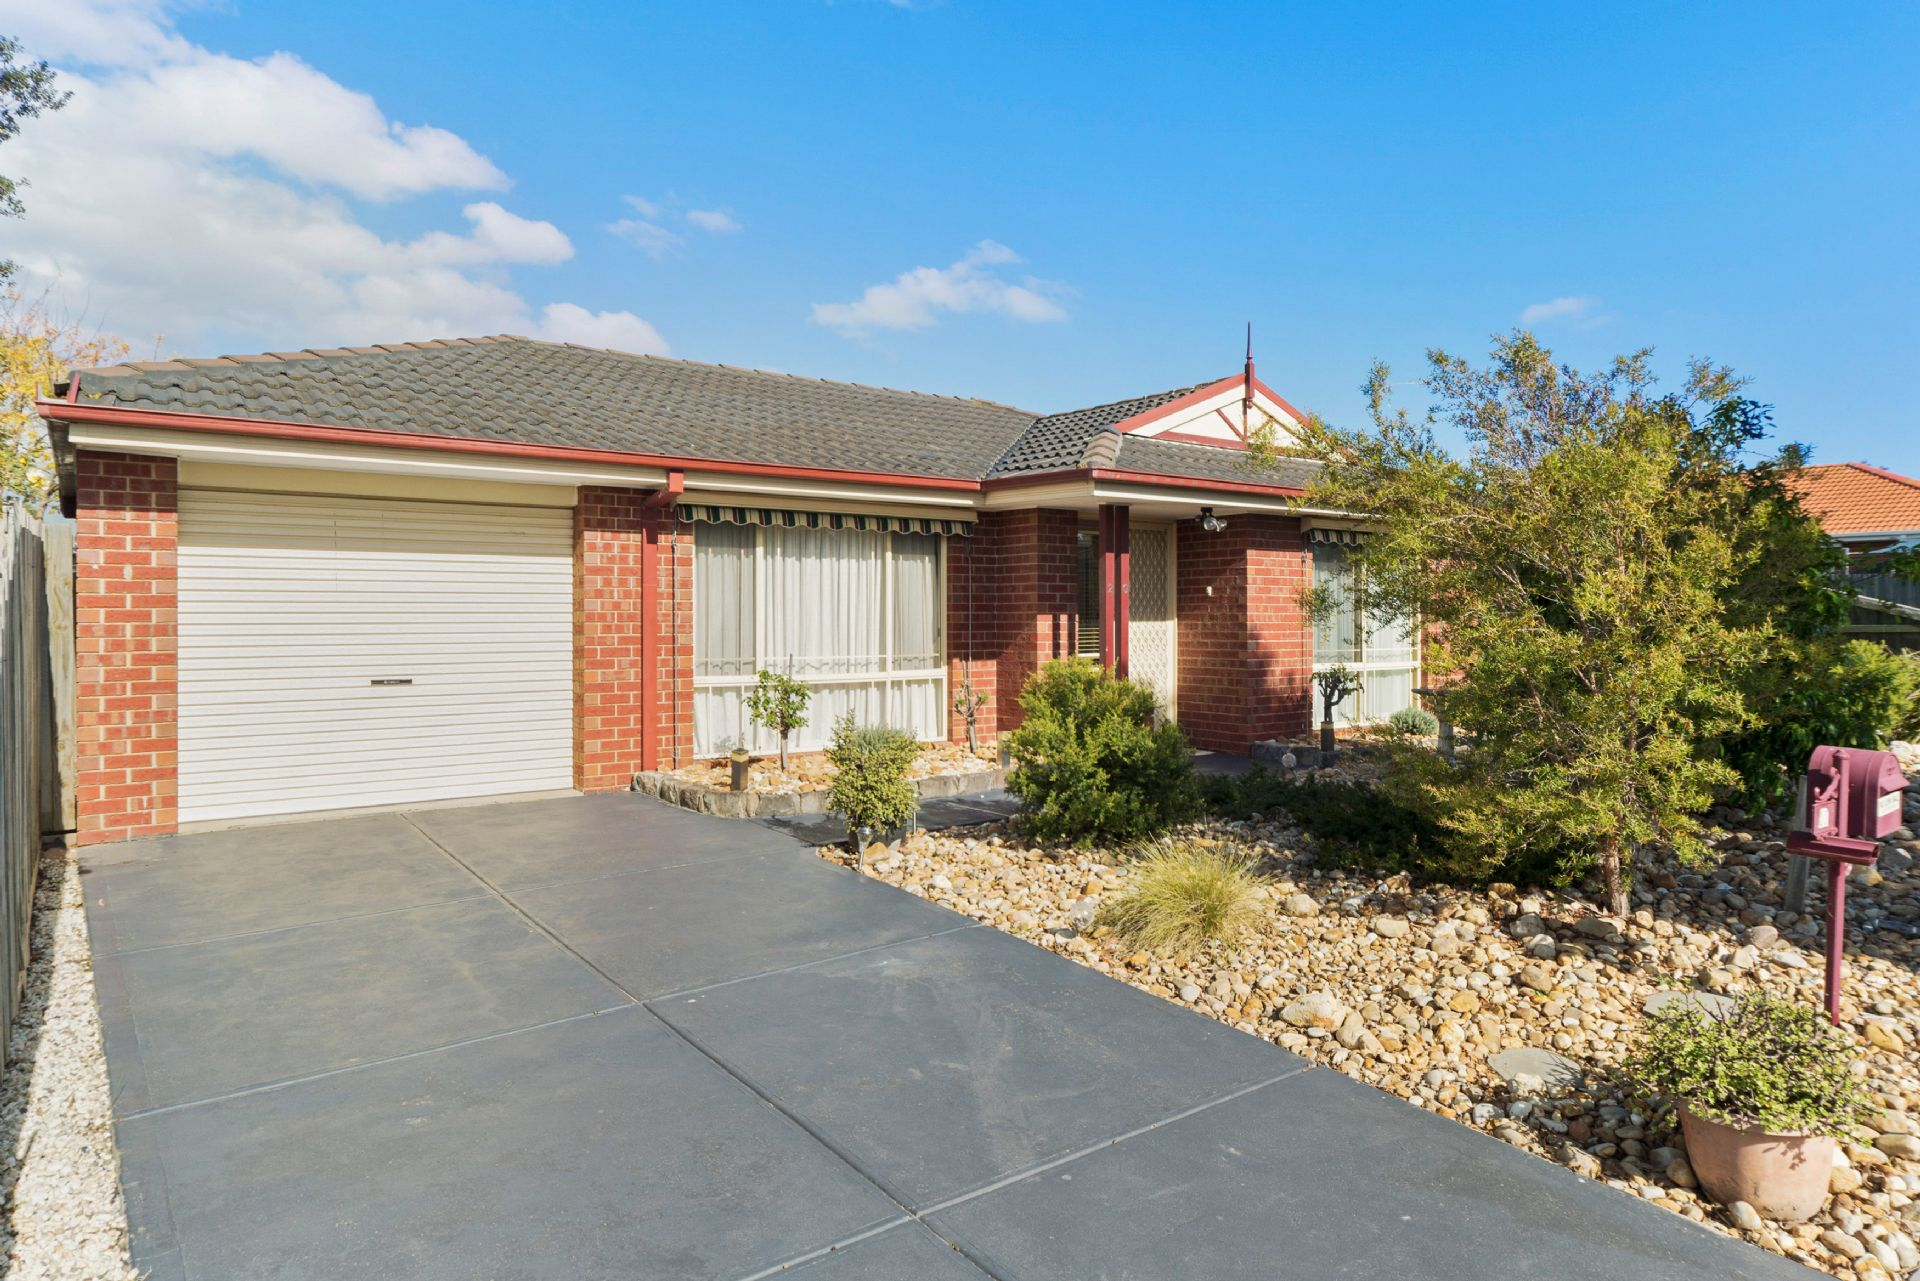 20 Kinlora Drive, SOMERVILLE, VIC, 3912 - Image